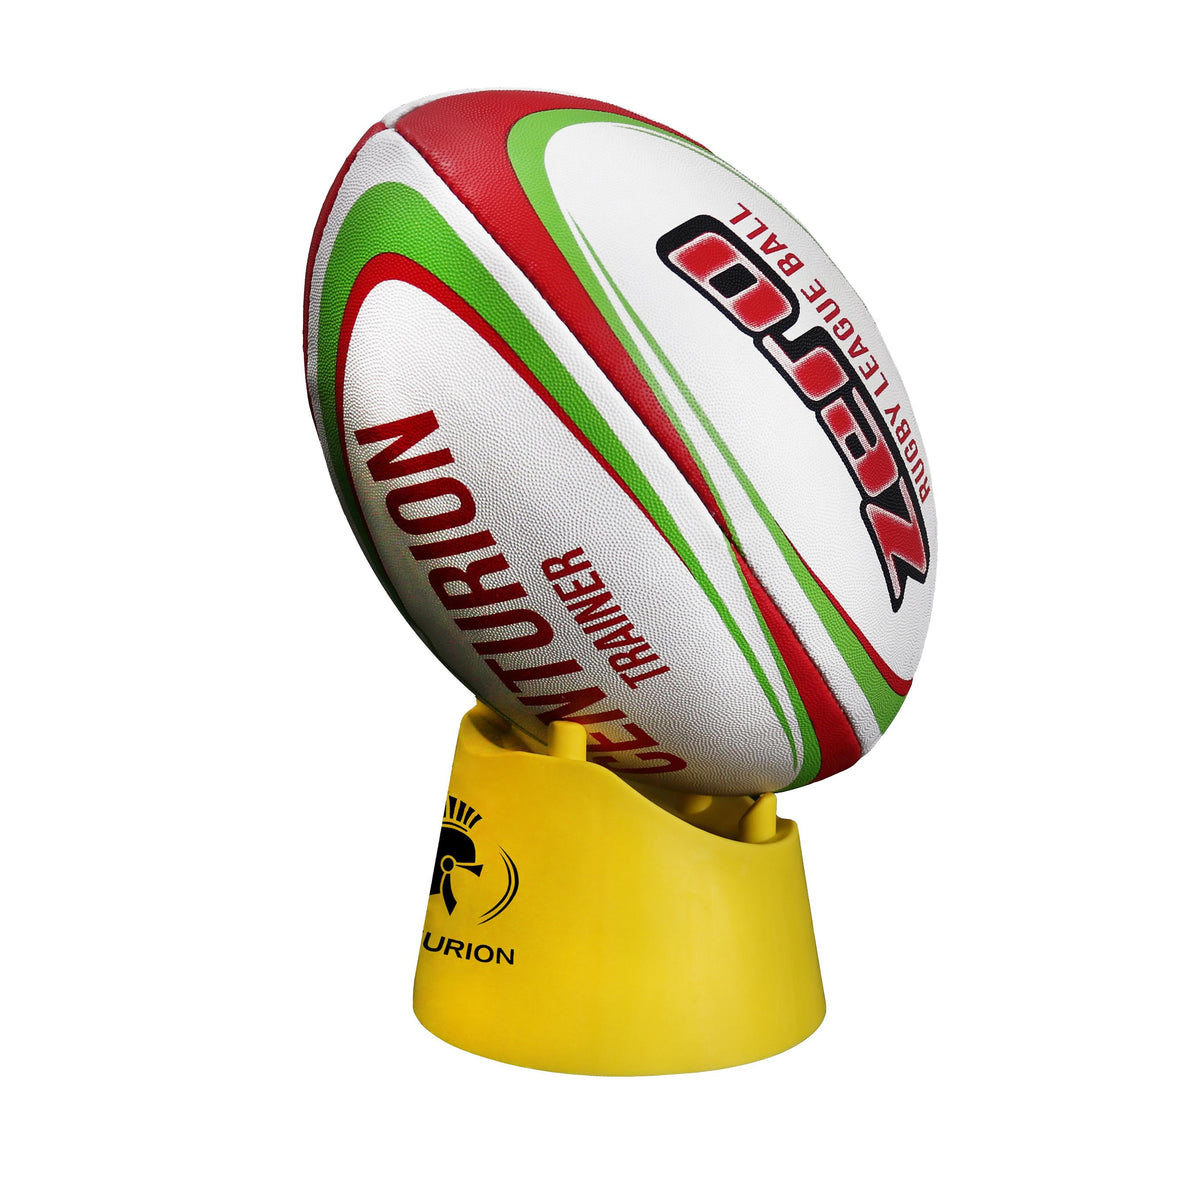 Precision Rugby Kicking Tee Centurion Rugby